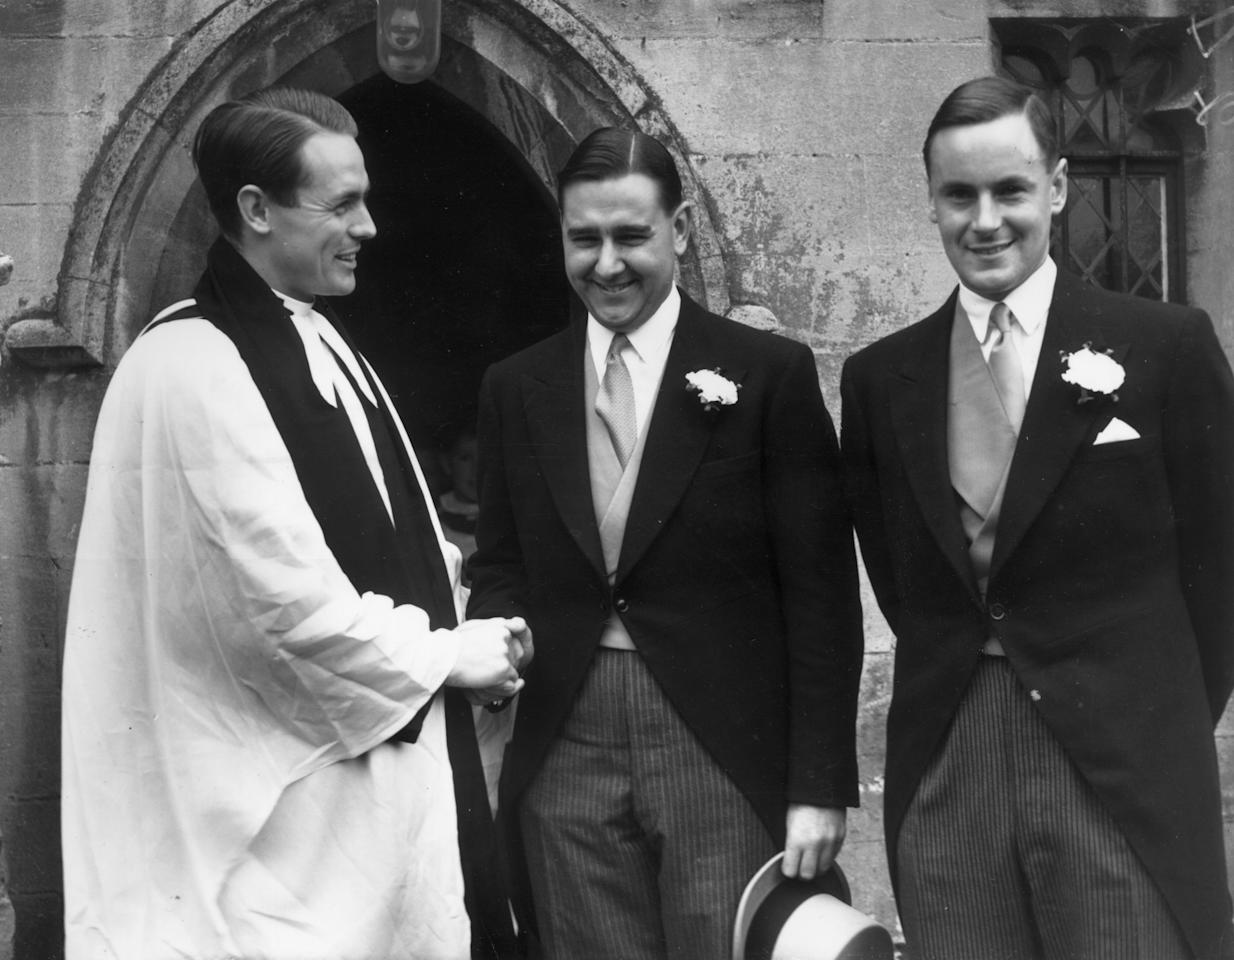 September 1956:  Colin Cowdrey (centre; 1932 - 2000) shakes the hand of the Rev David Sheppard, with his best man Peter May (1929 - 1994) at his side on the occasion of his marriage to Penelope Chiesman at St Nicholas' Church in Chislehurst, Kent; all three men have captained the England cricket team.  (Photo by Topical Press Agency/Getty Images)